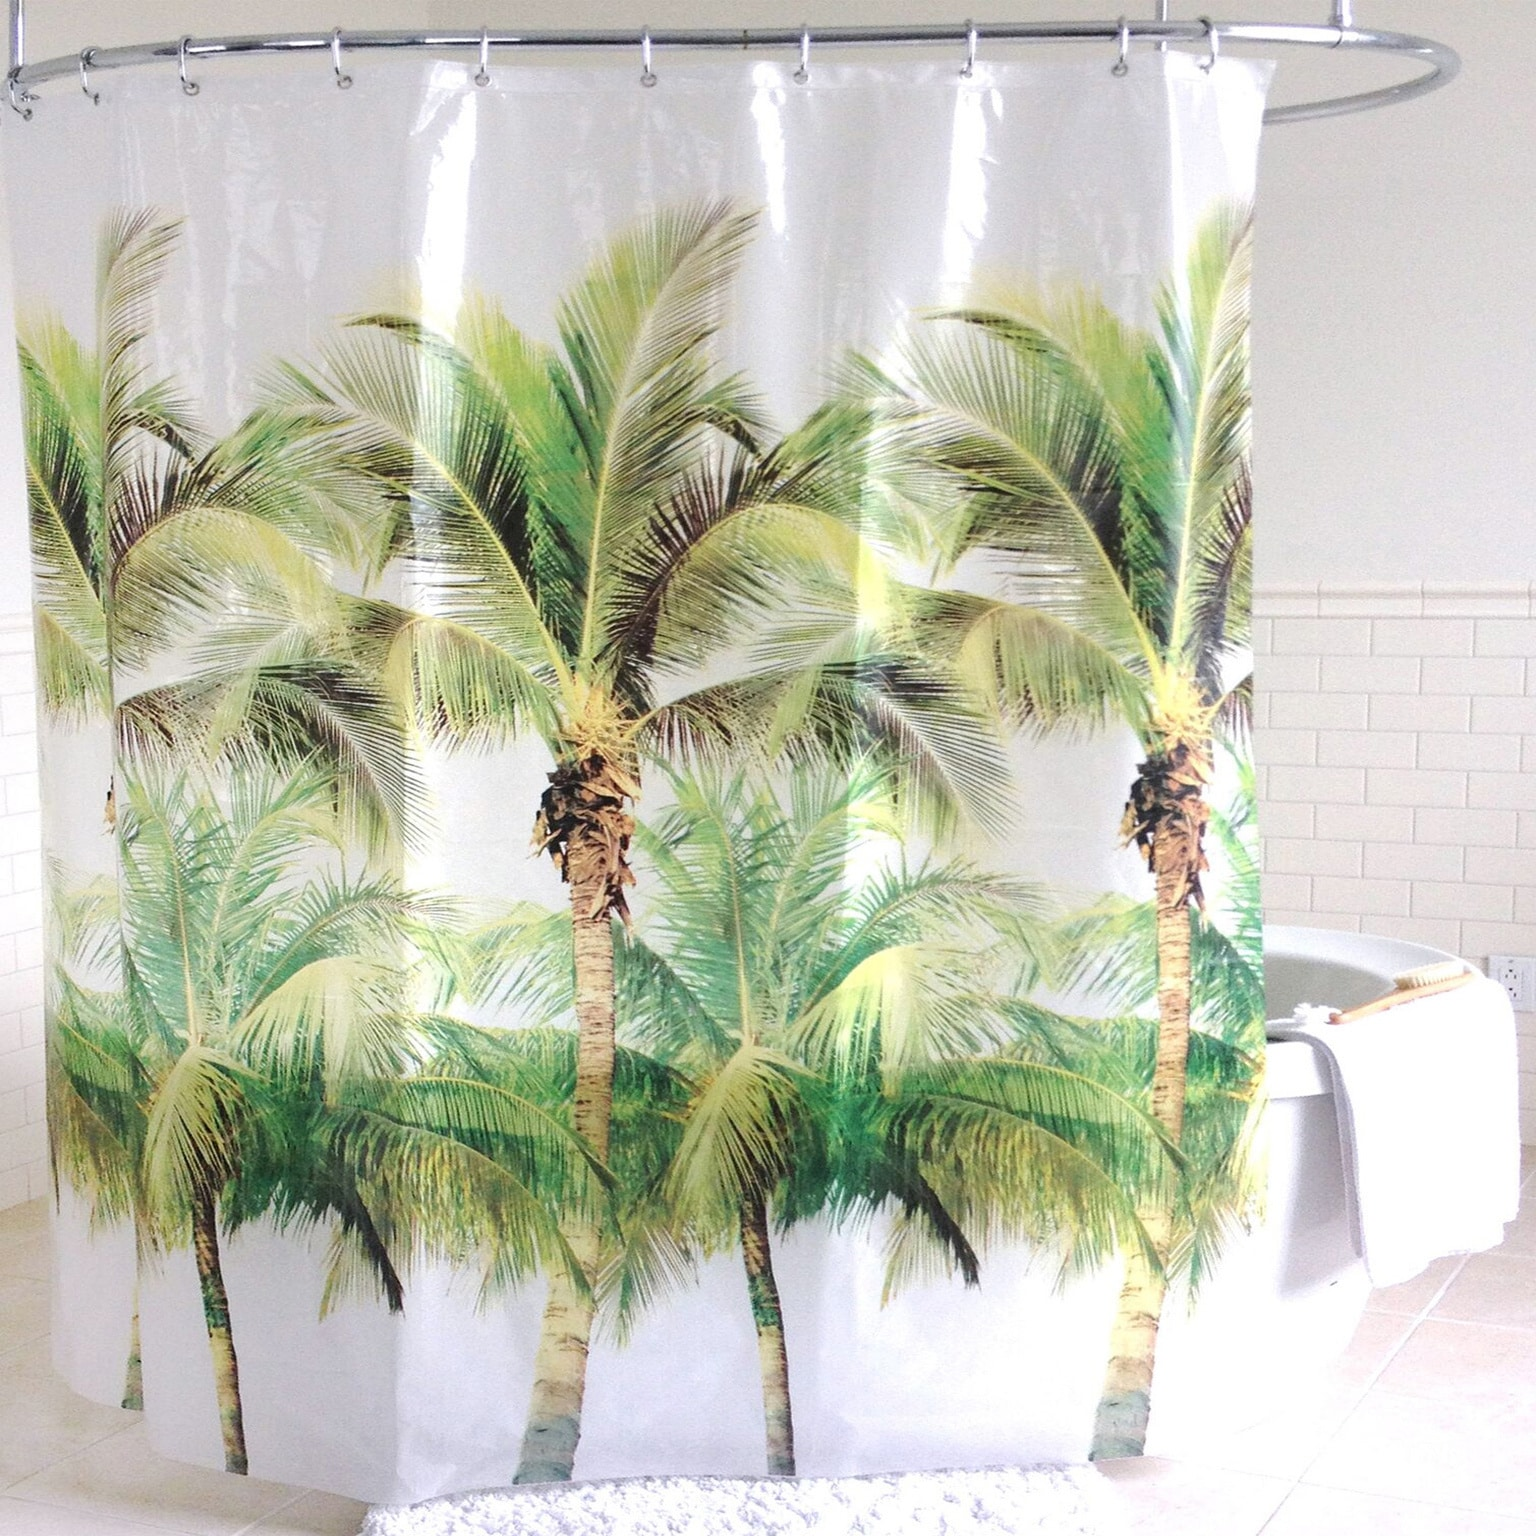 Green Palm Tree PEVA Shower Curtain (70 X 72)   Free Shipping On Orders  Over $45   Overstock   22553913